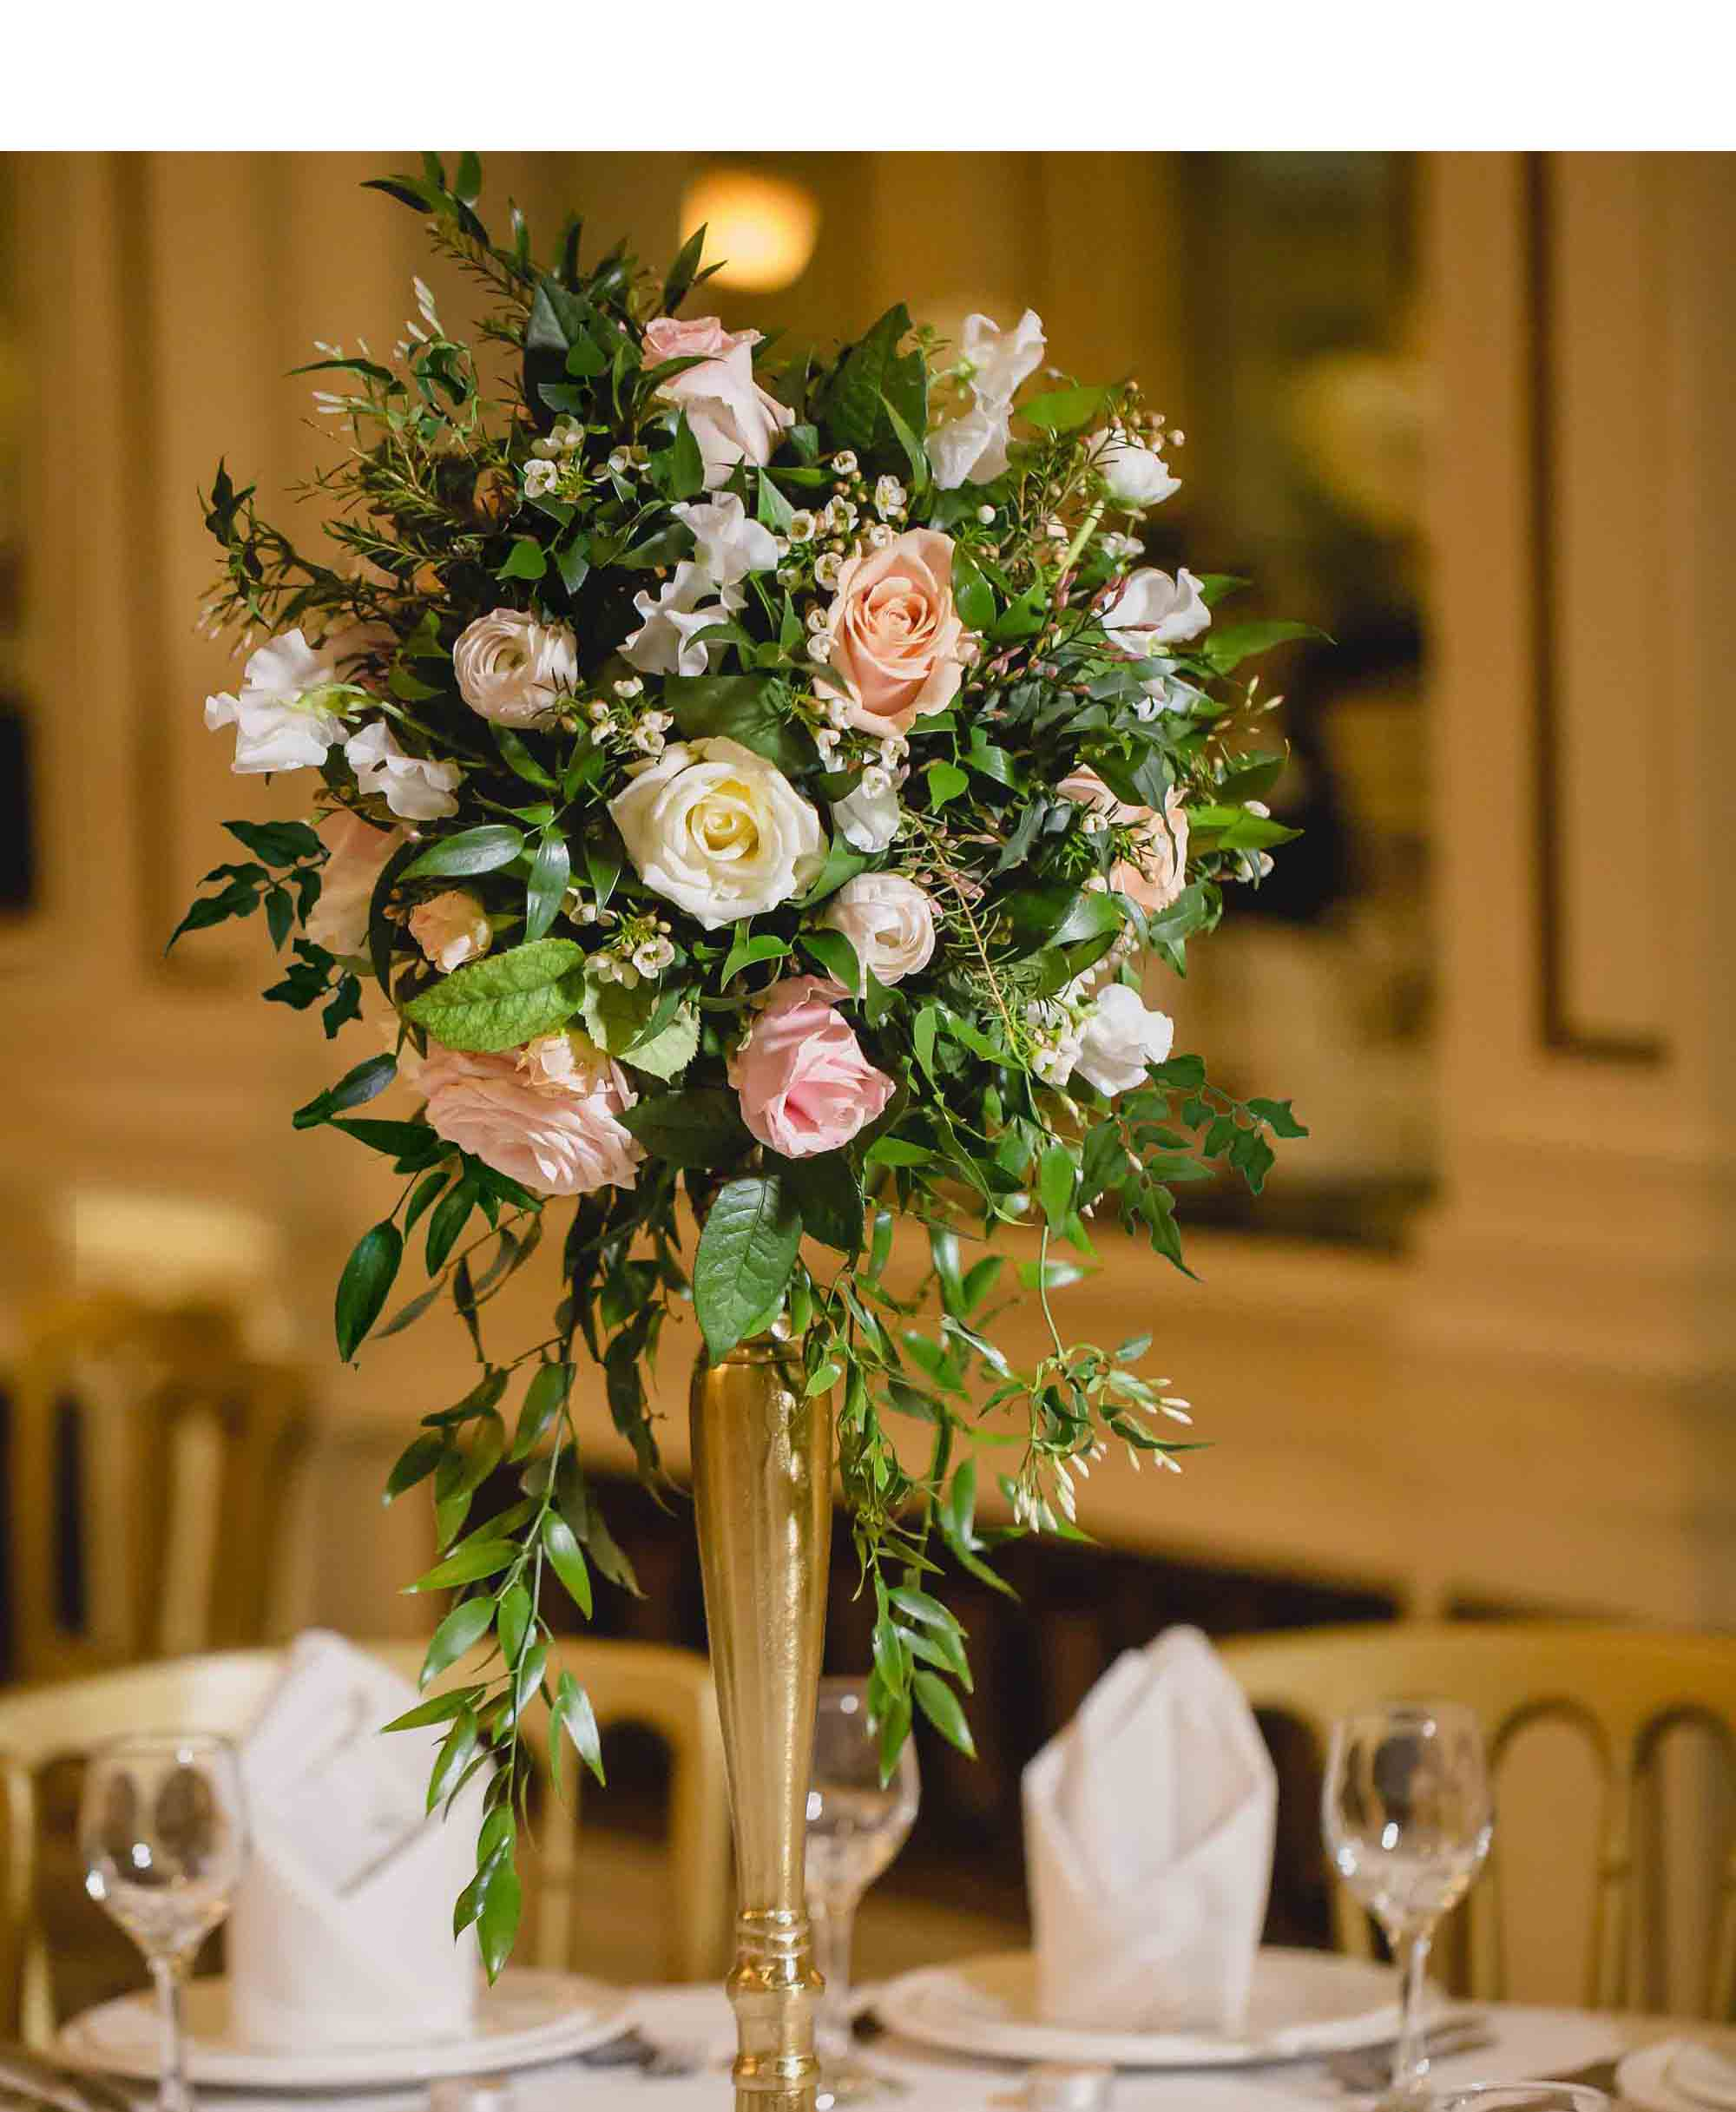 Designer Wedding Flowers: Weddings, Flowers, Leeds, Florist, Designer, Yorkshire